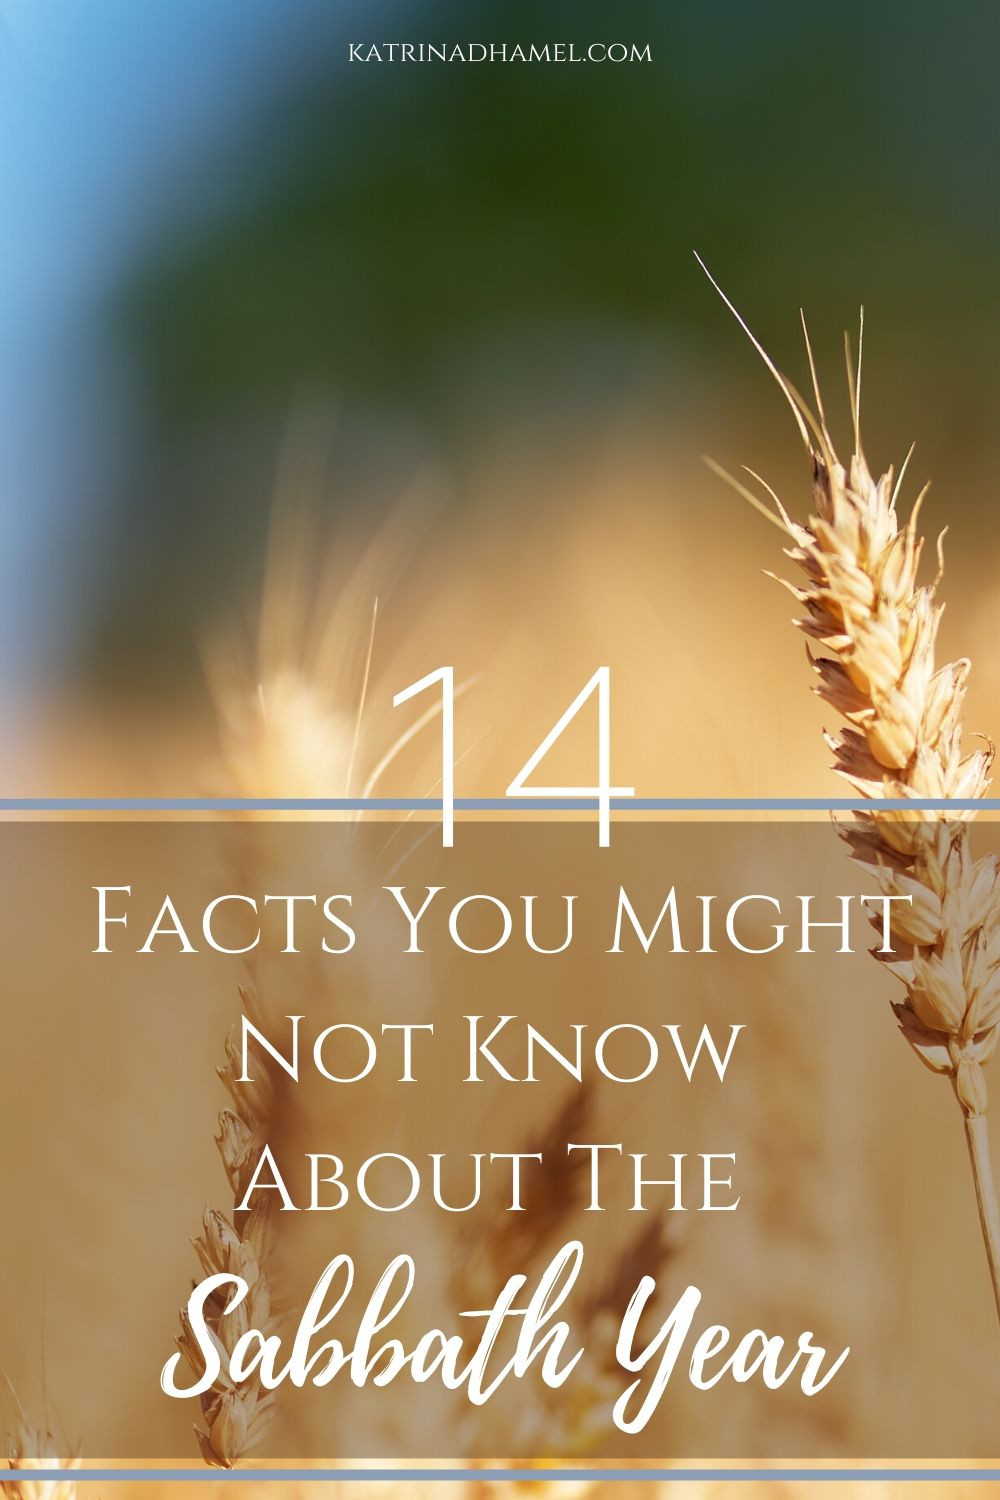 14 Facts you might not know about the sabbath year on a background of a stalk of ripe wheat